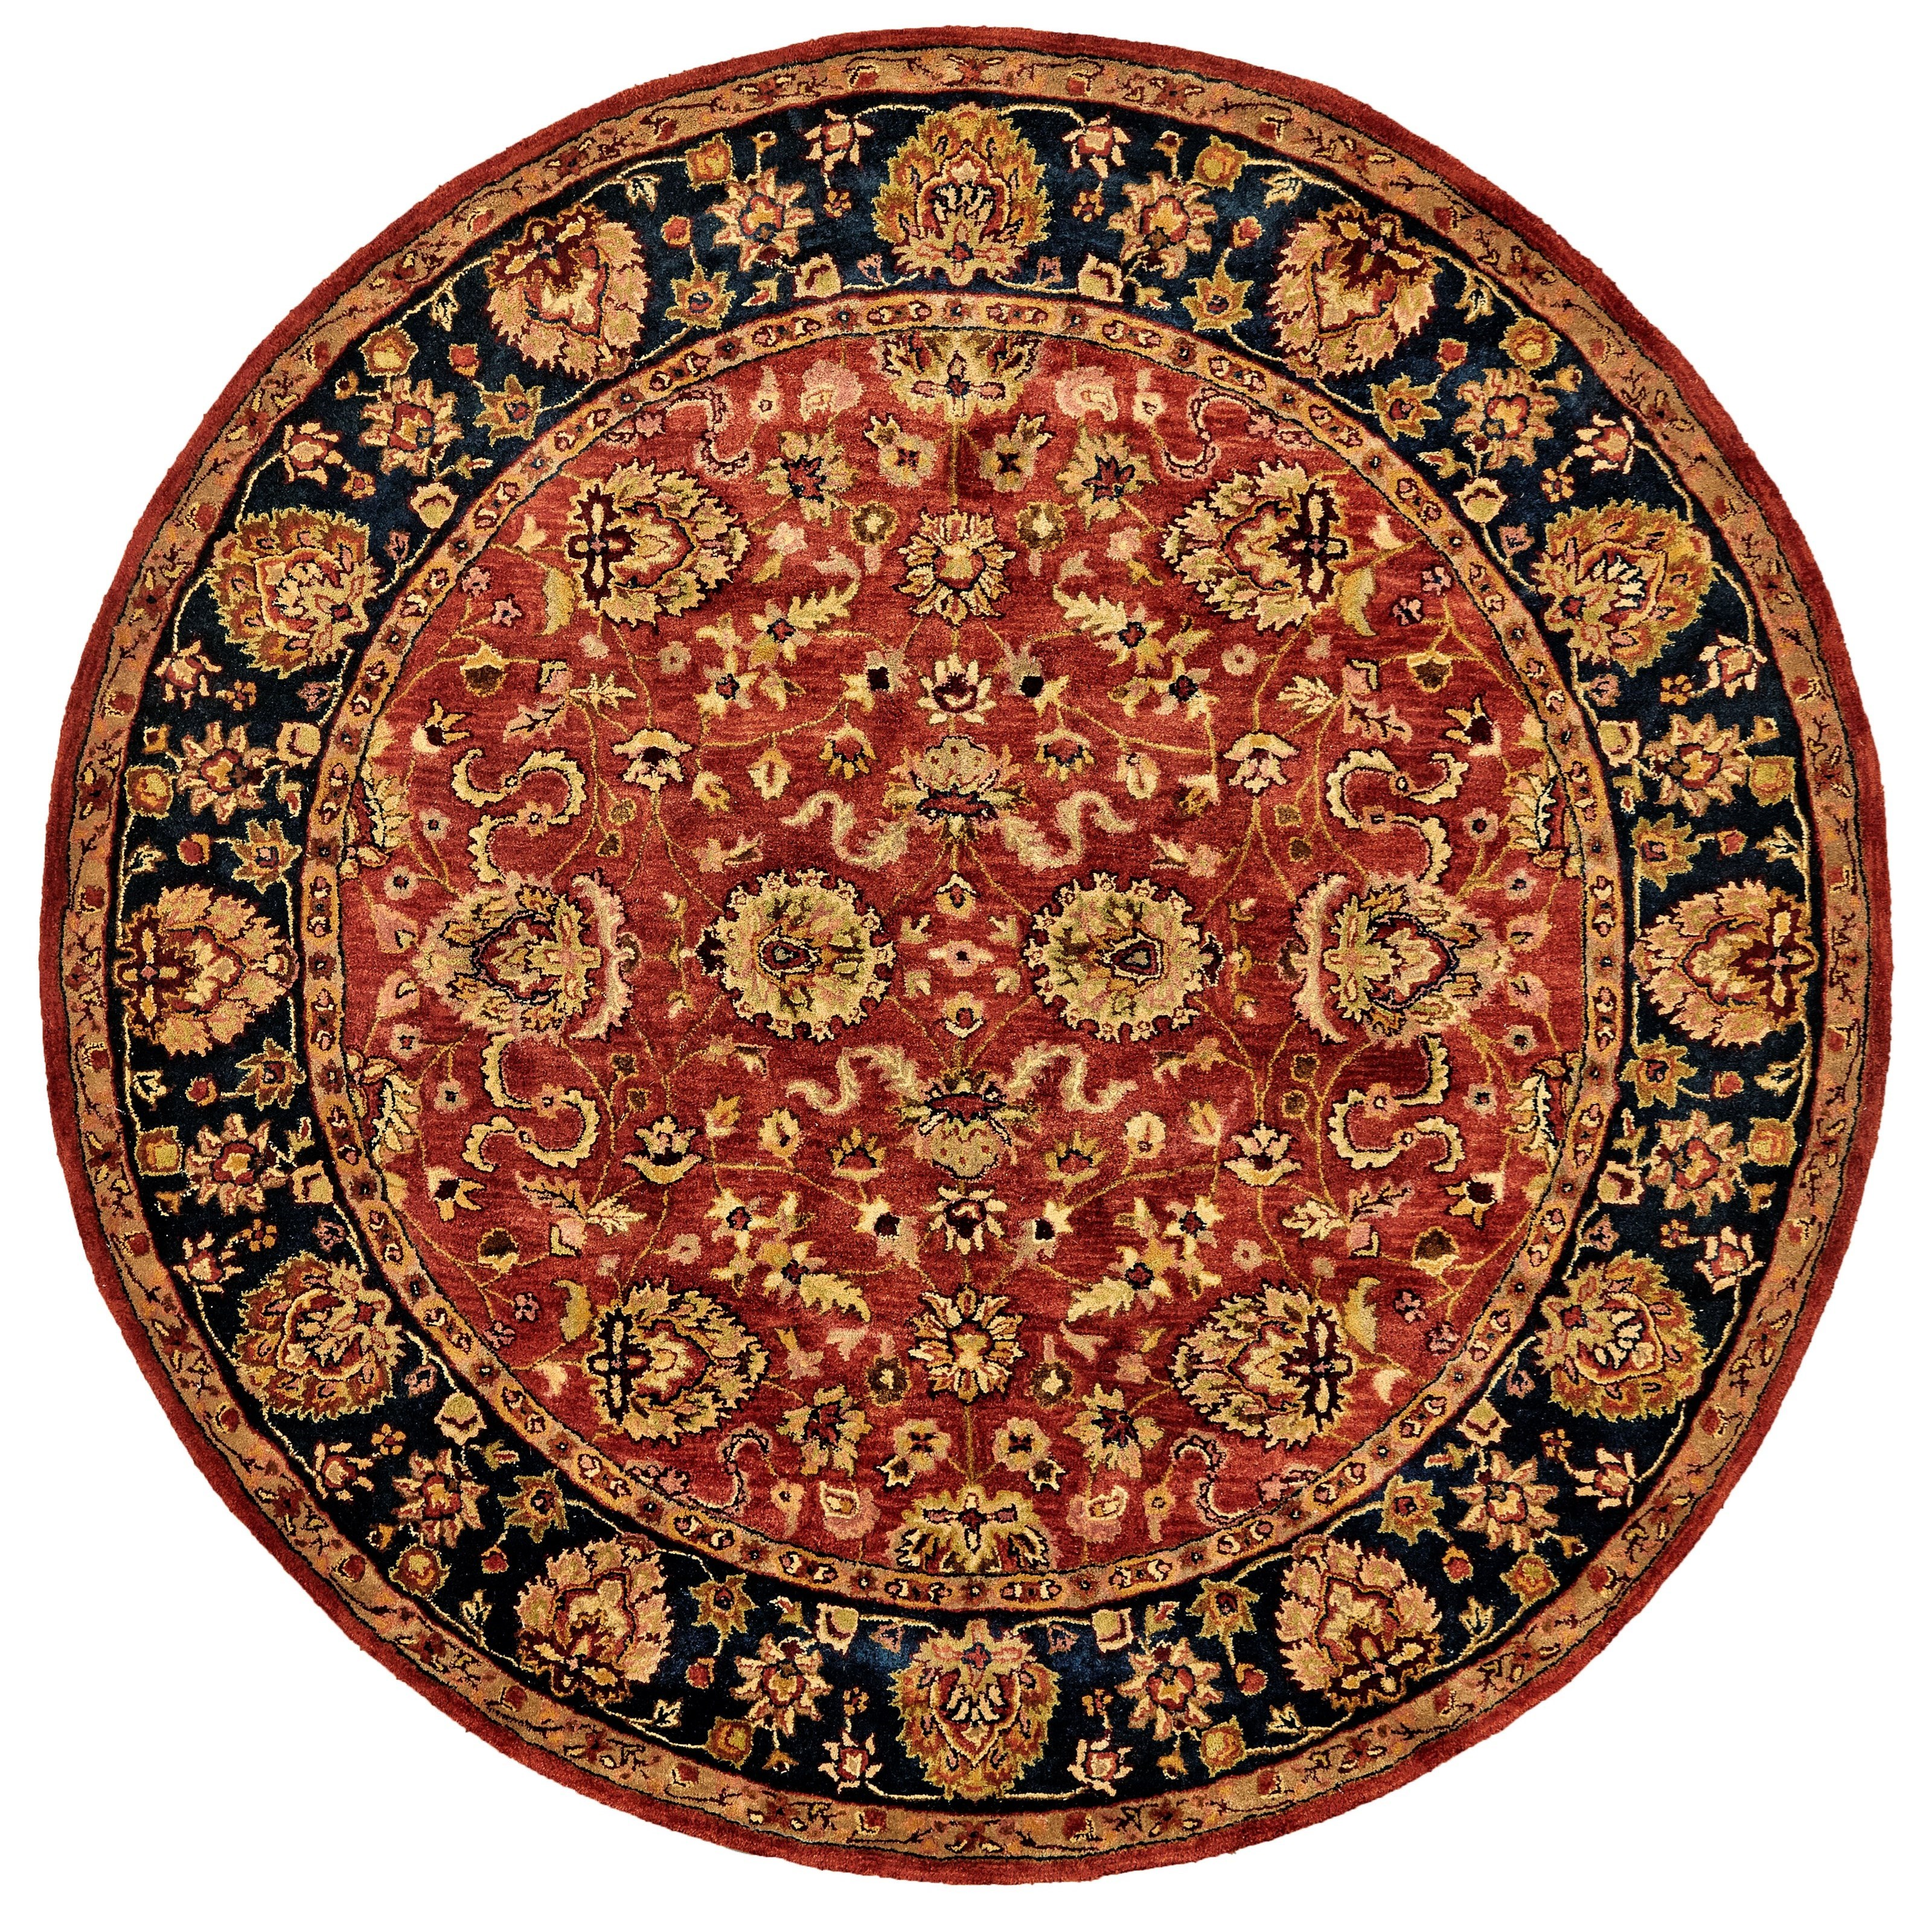 Alexandra Red/Navy 8' x 8' Round Area Rug by Feizy Rugs at Sprintz Furniture